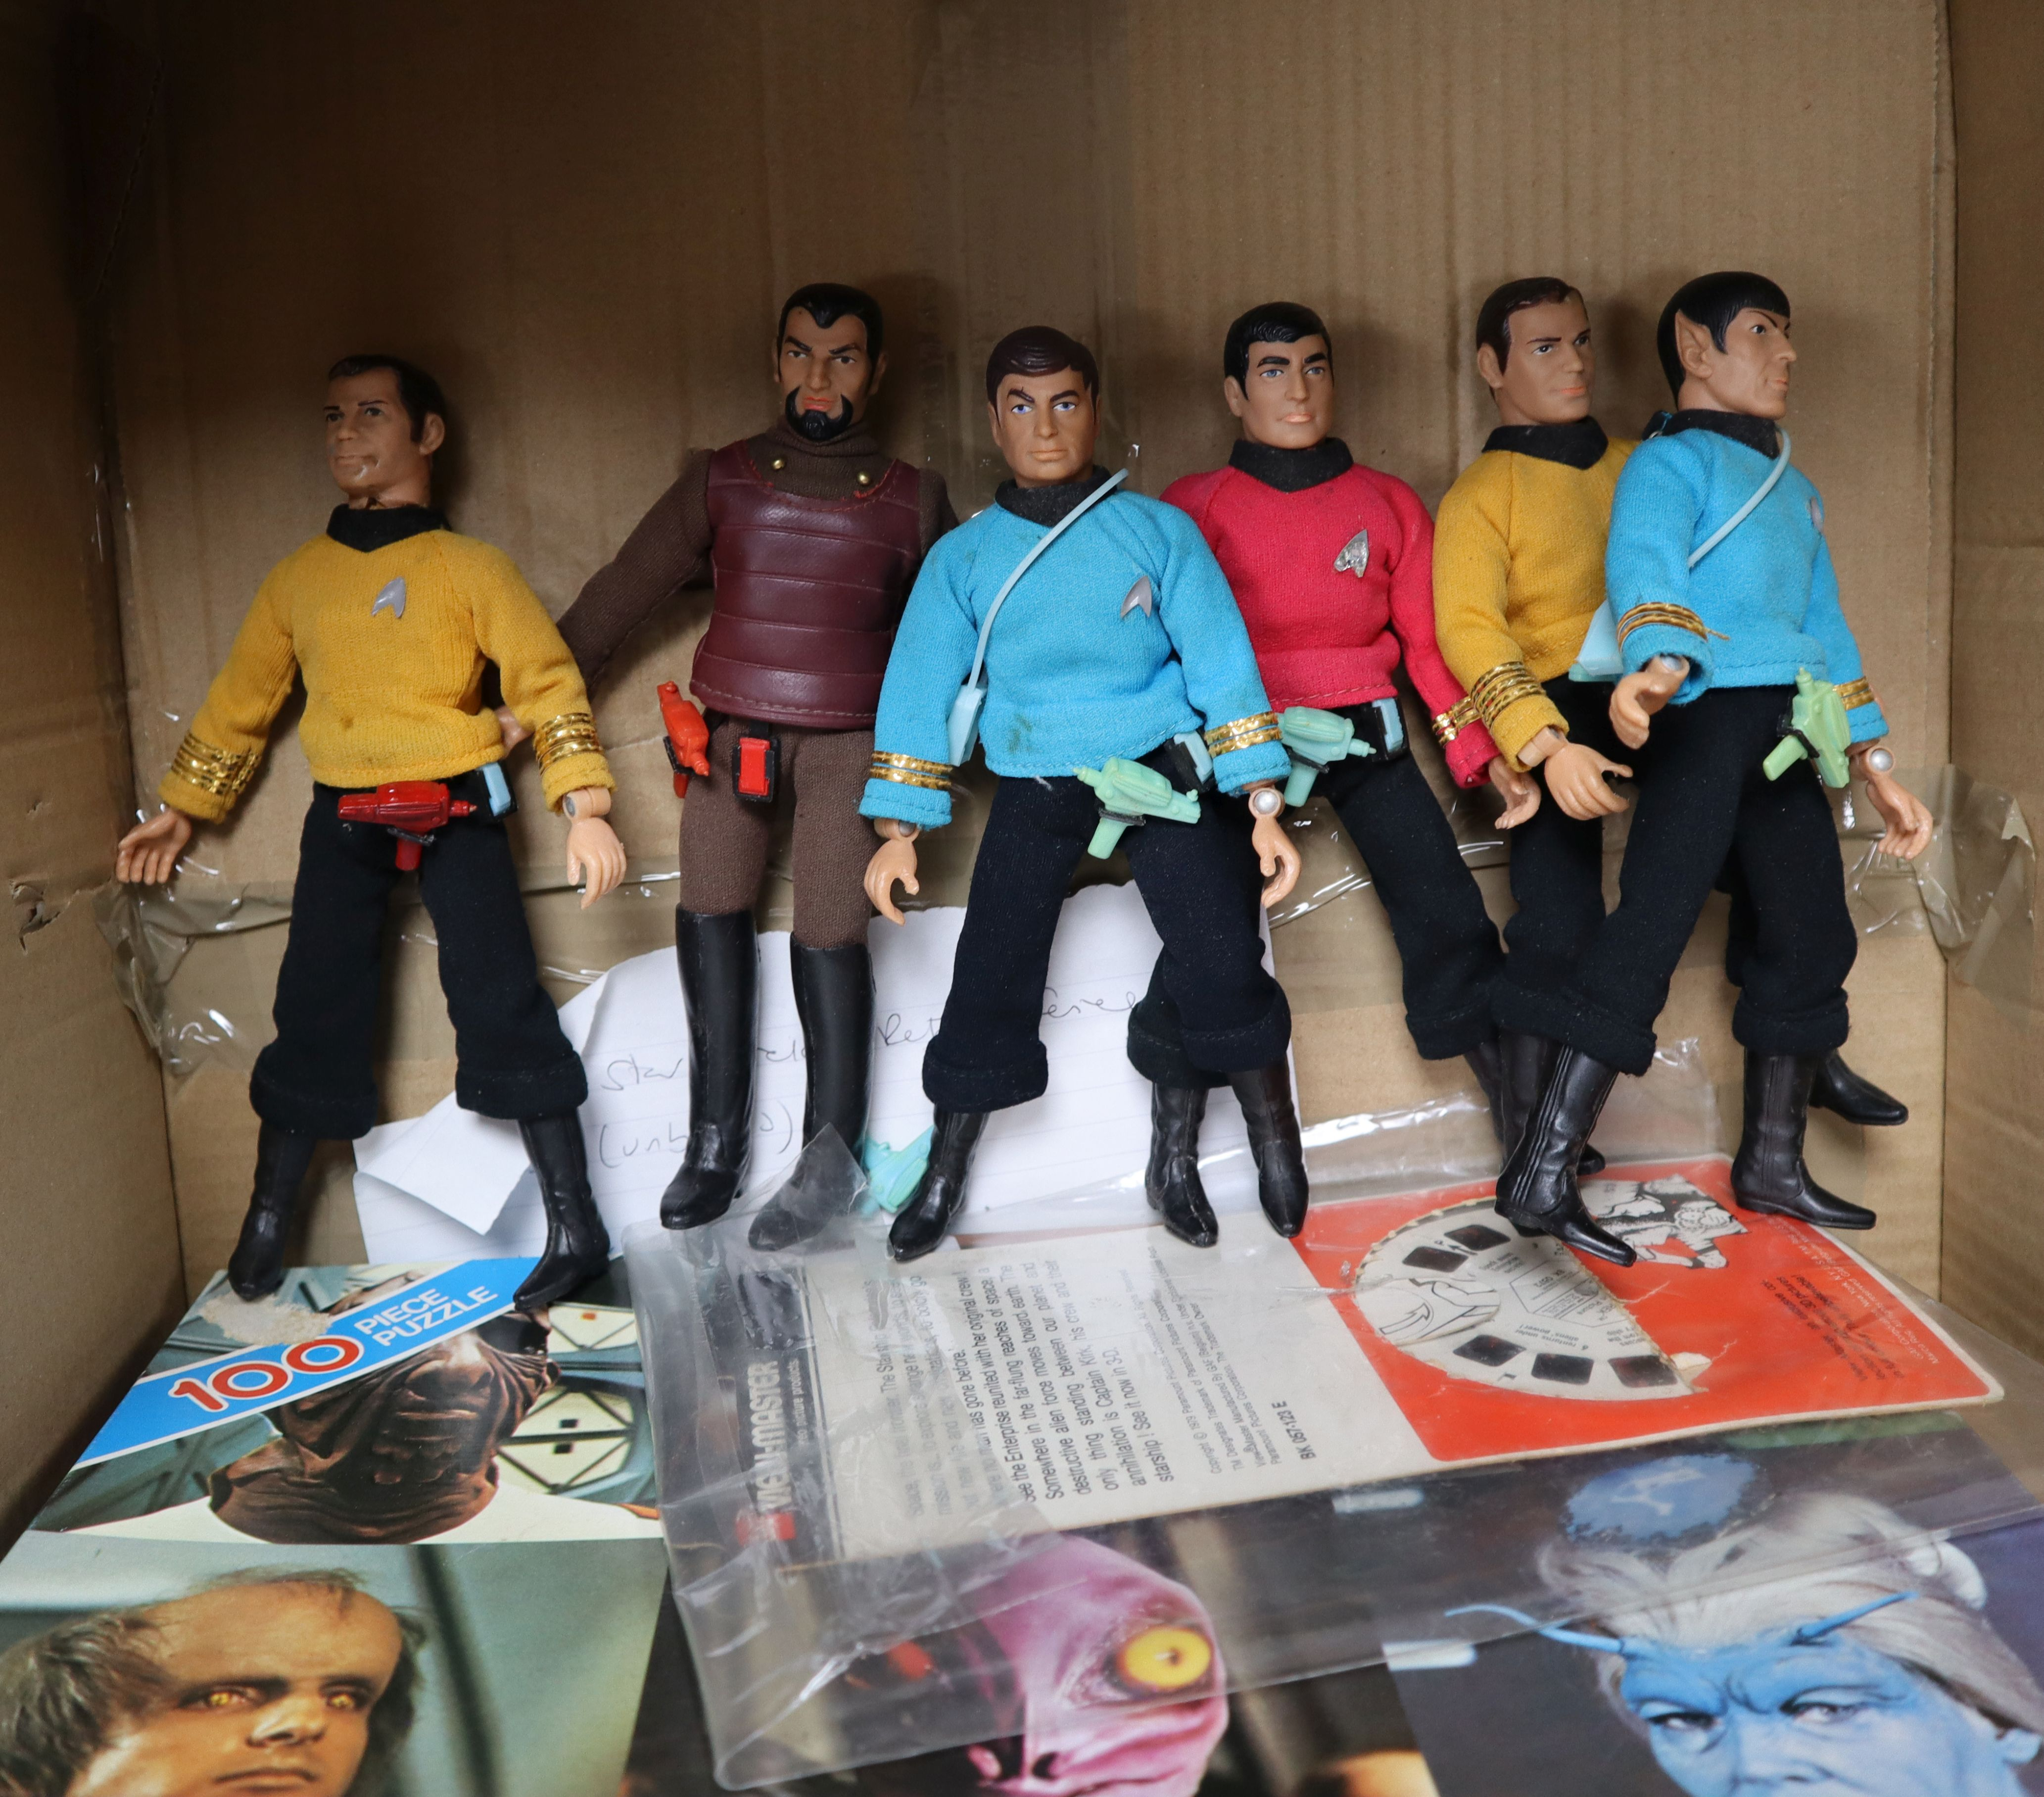 Lot 6 - Star Trek - Mego - six vintage Star Trek action figures, c.1974, a vintage puzzle and viewmaster